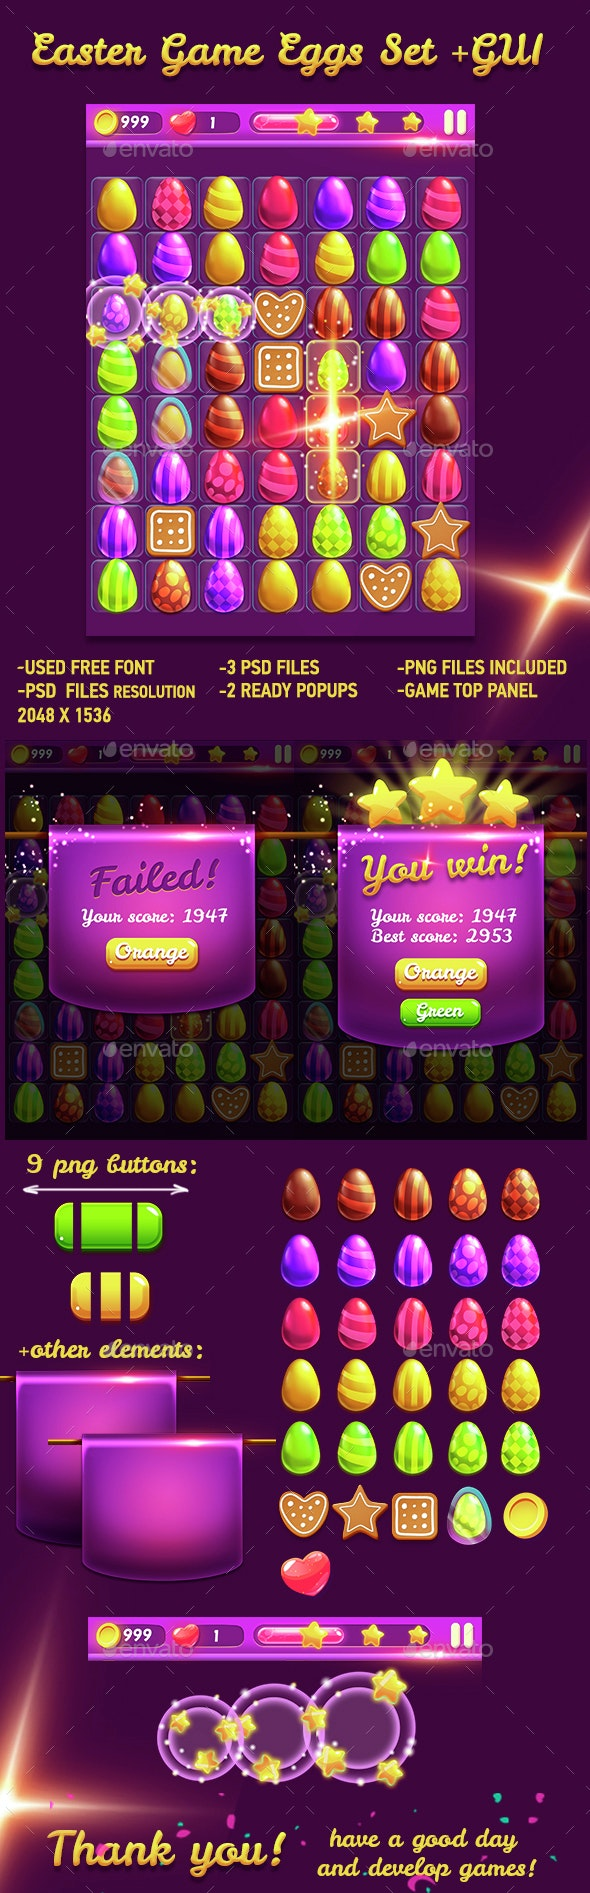 Easter Game Eggs Set and GUI - Game Kits Game Assets